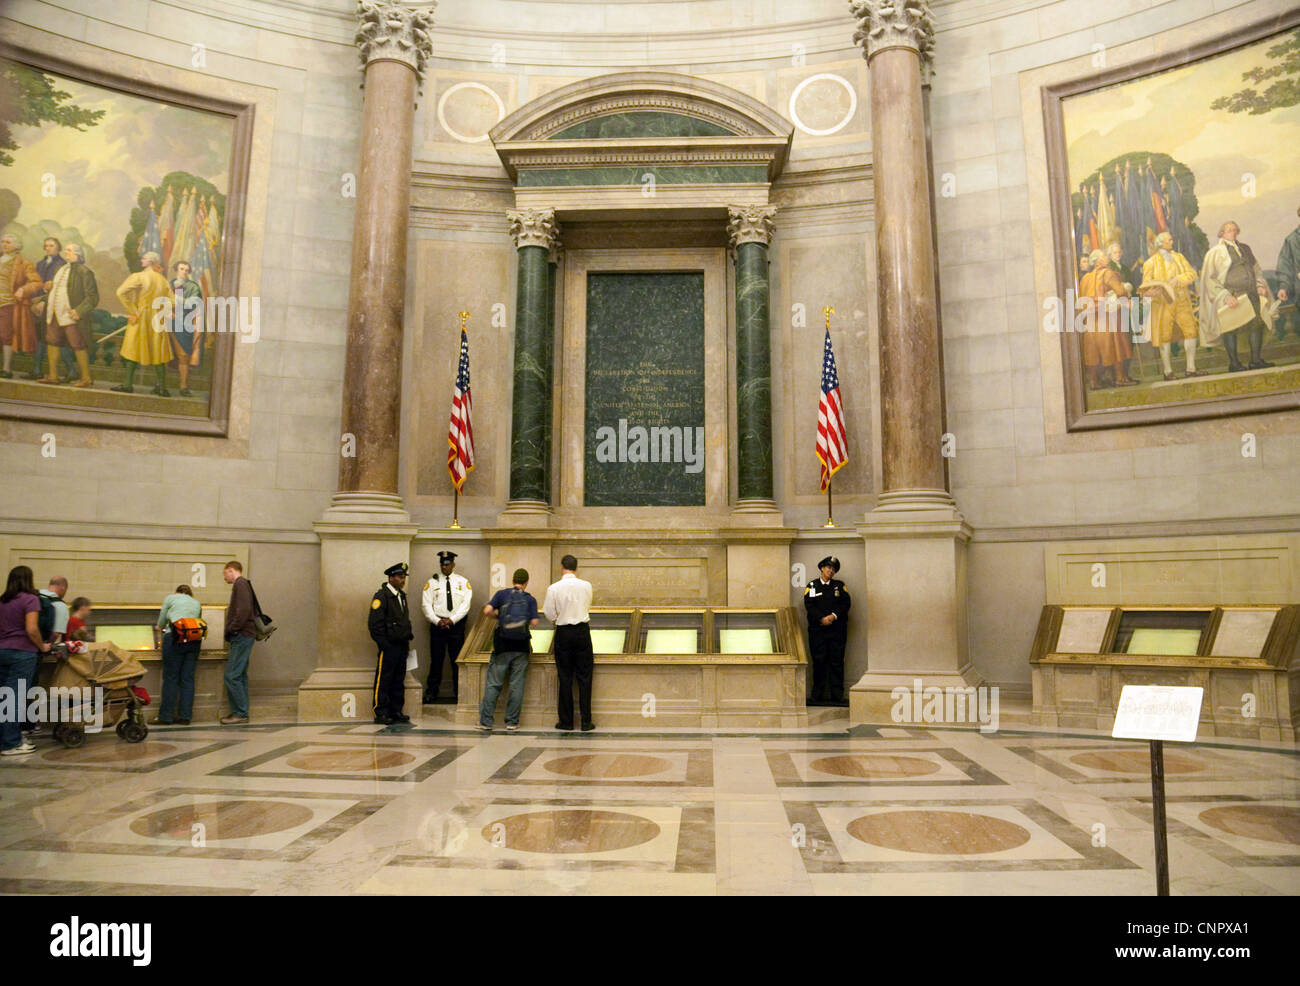 Tourists viewing documents and art in the Rotunda, National Archives, Washington DC USA - Stock Image